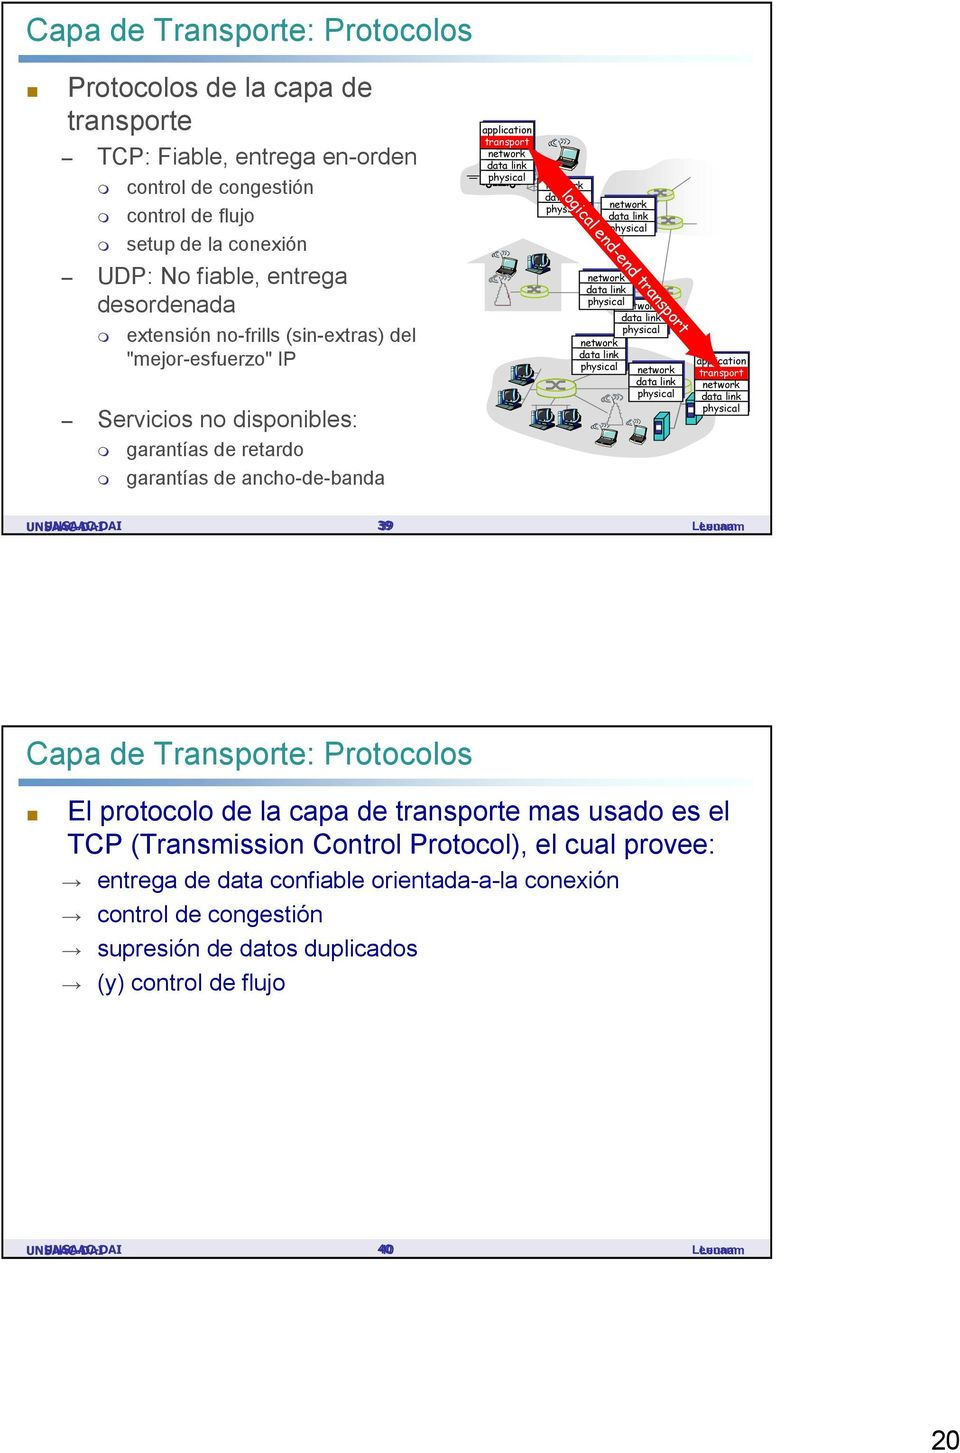 logical end-end transport data link data link data link data link data link application transport data link 39 Capa de Transporte: Protocolos El protocolo de la capa de transporte mas